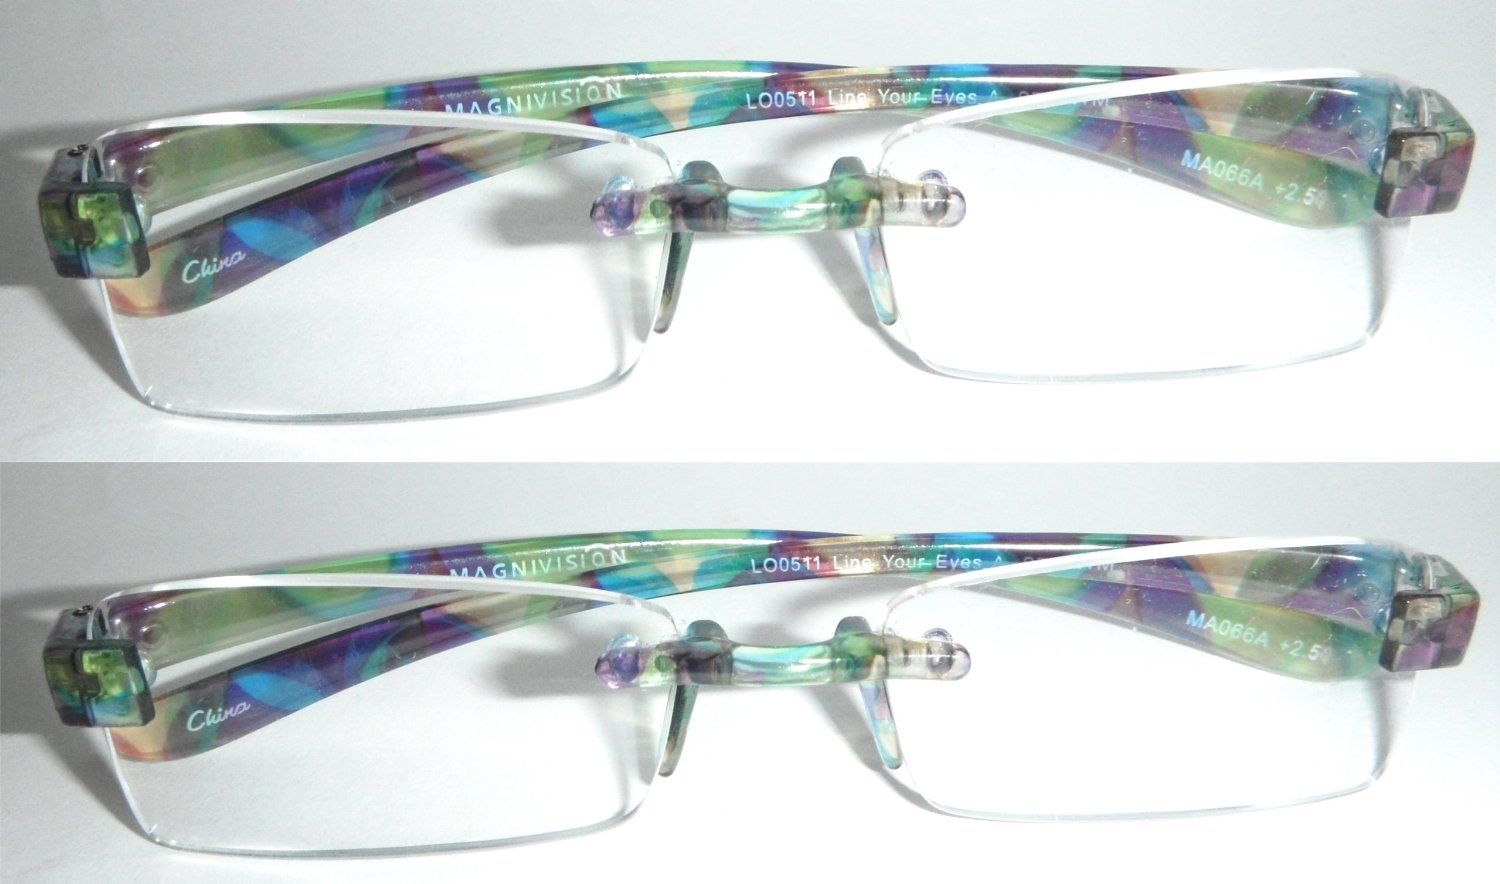 Magnivision Featherlight Rimless Frameless Reading Glasses